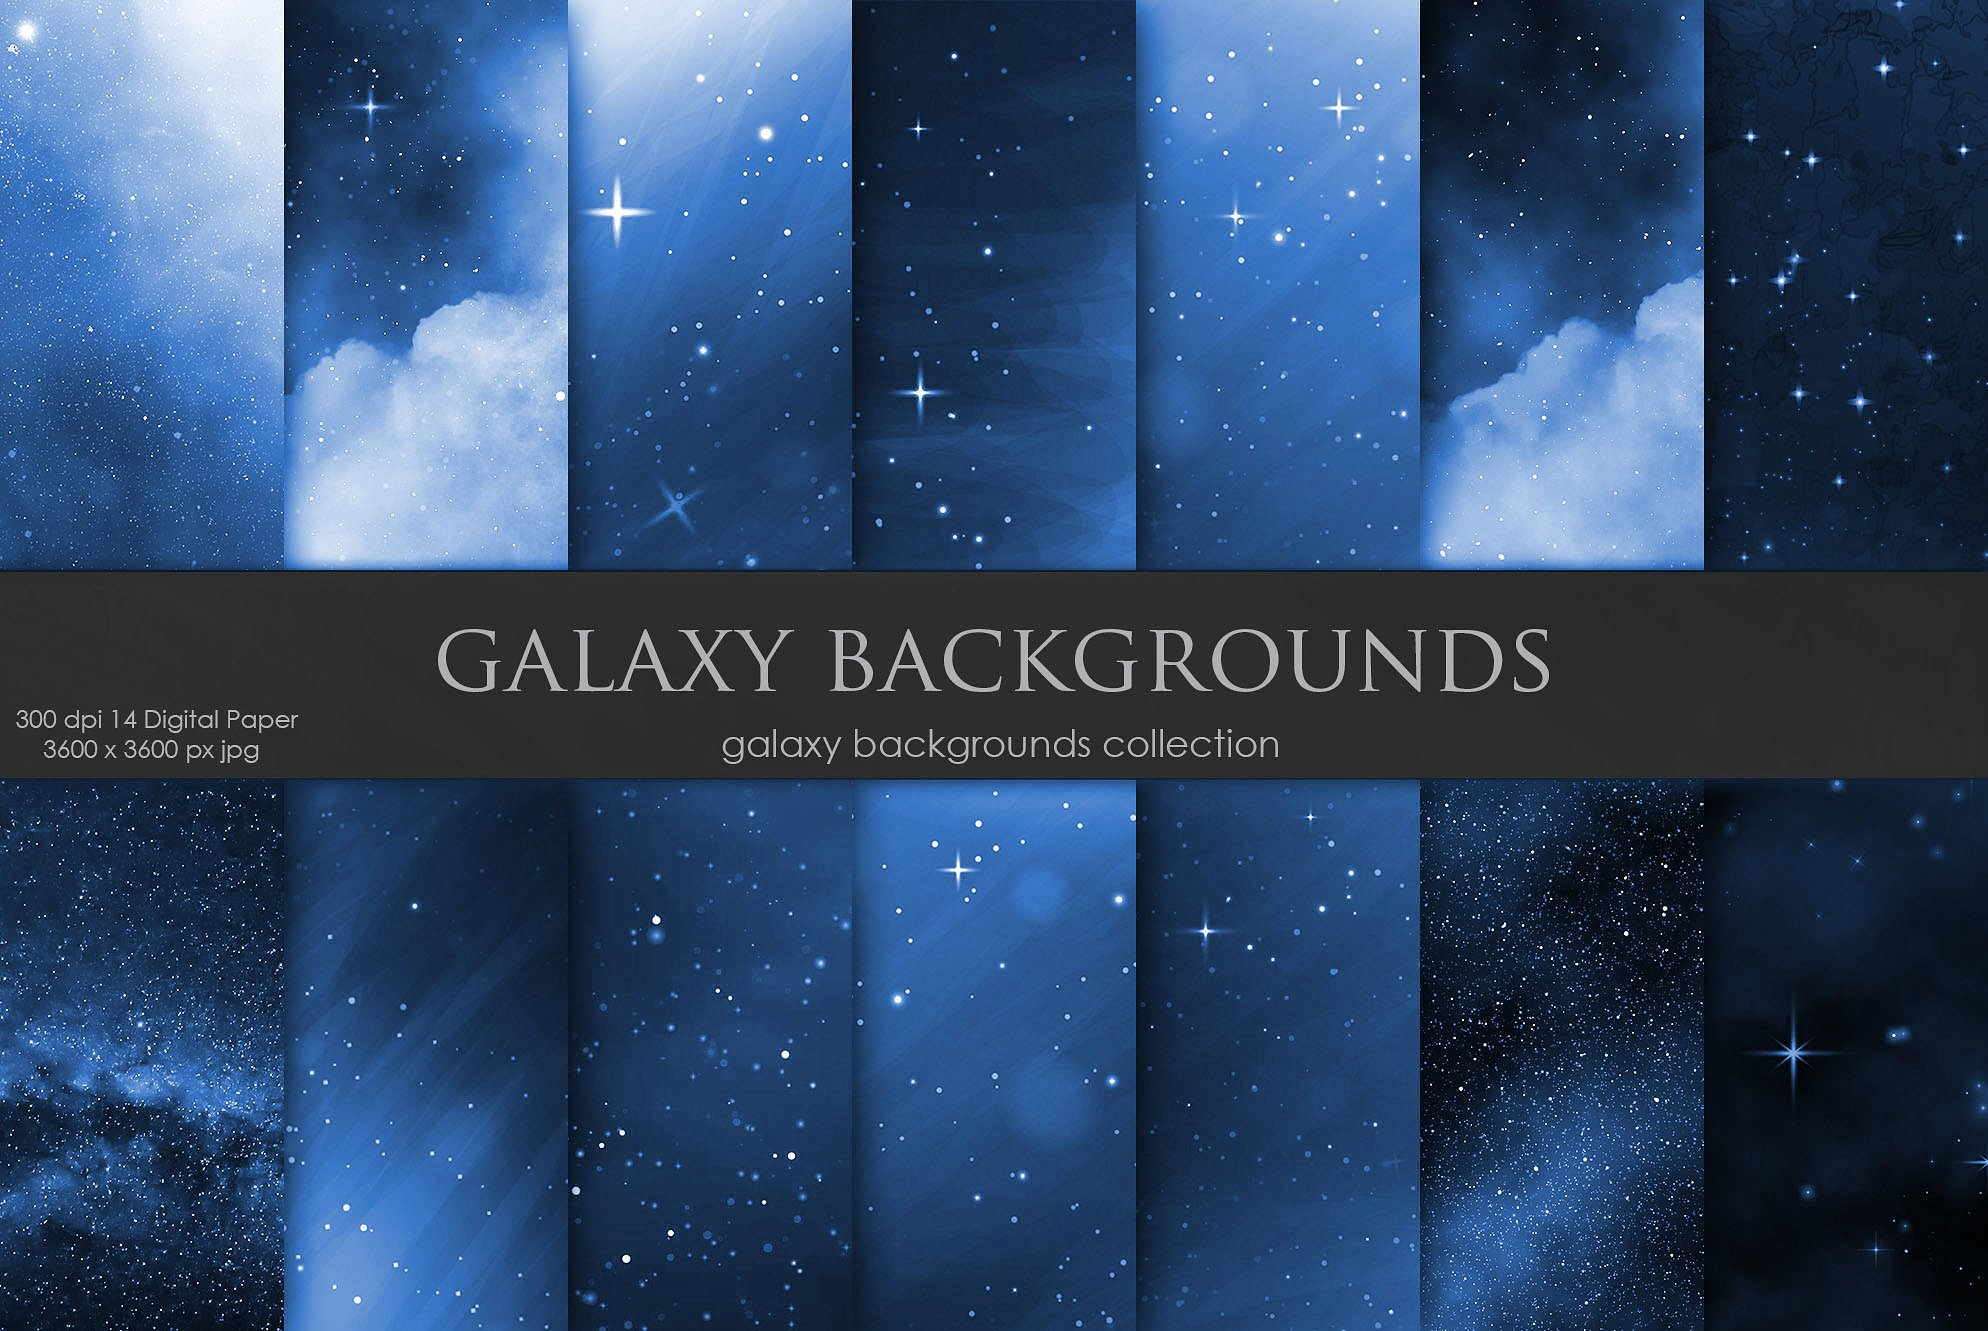 500+ Galaxy Background Vectors, Photos and PSD files 2020: Does It Work for Web Design? - navy blue galaxy backgrounds